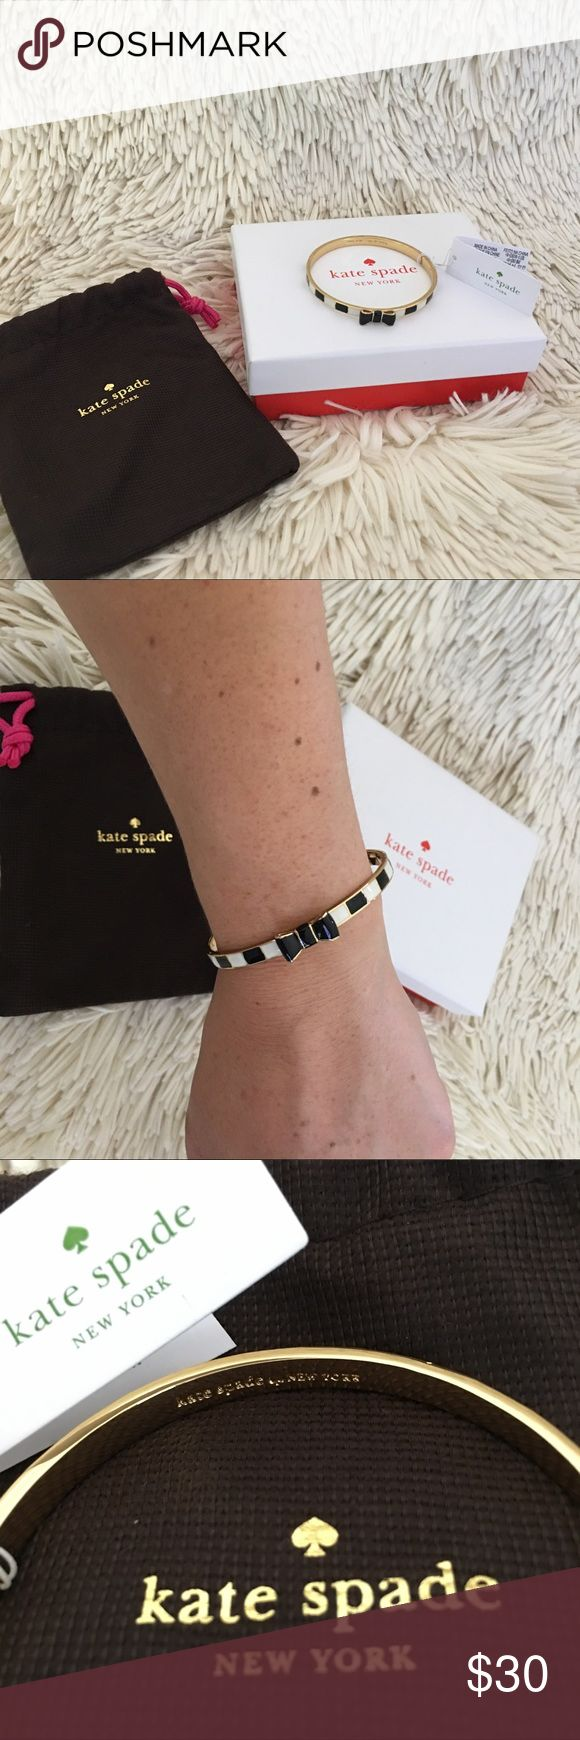 """Kate Spade Black/White/Gold Enamel Bow Bracelet Never been worn, new with tags Kate Spade Black/White/Gold Enamel Bow Bracelet. Bracelet measures 2.5"""" in width. In perfect condition. kate spade Jewelry Bracelets"""